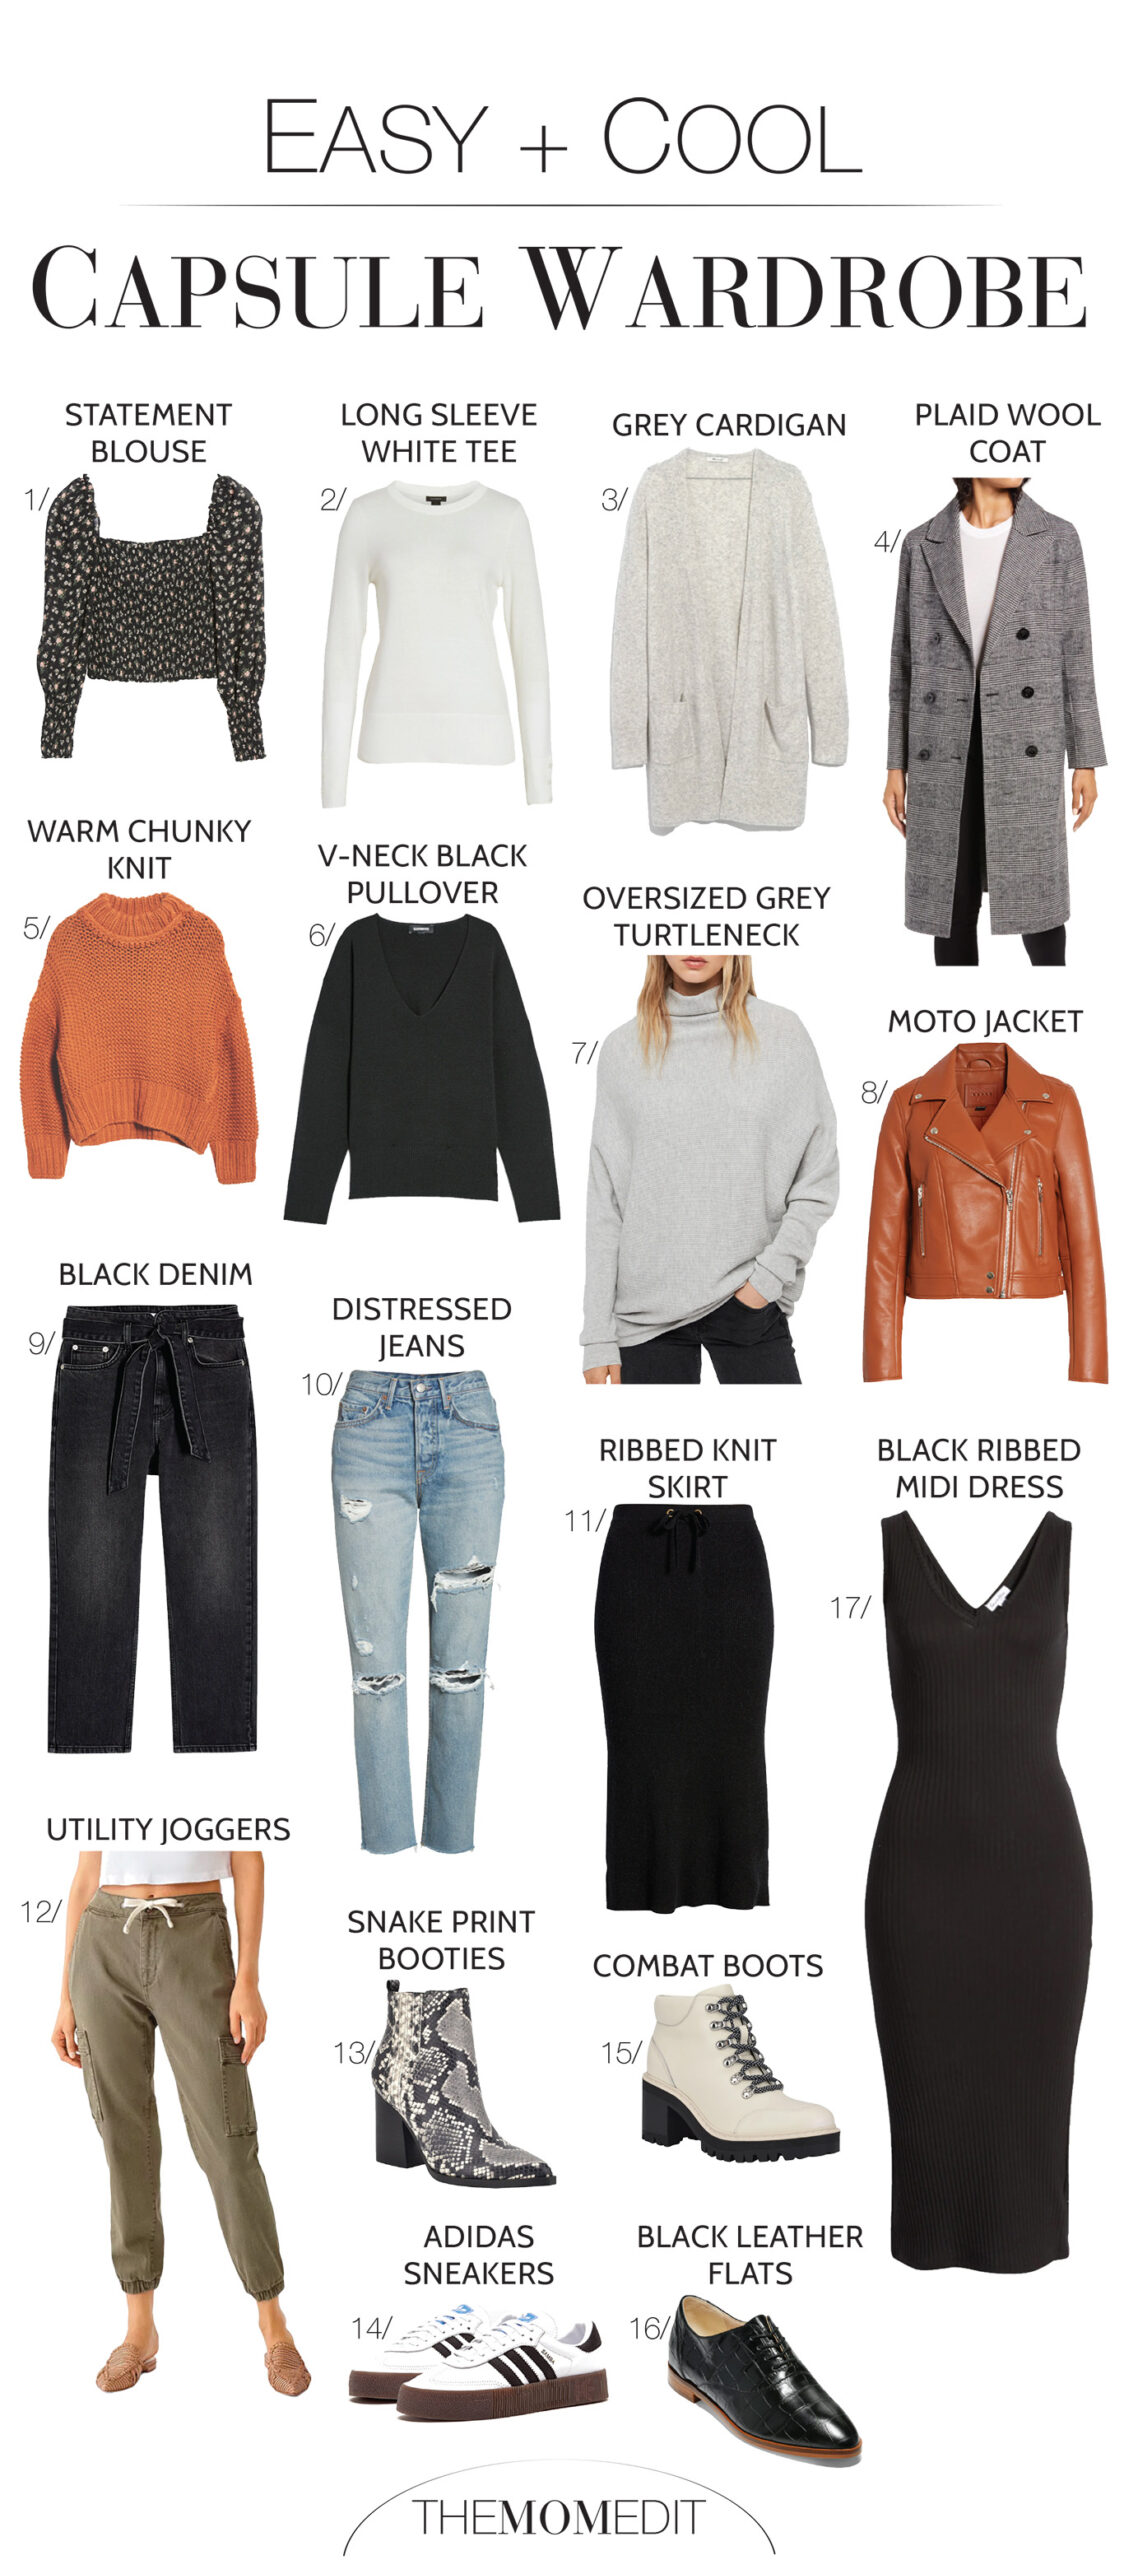 A plaid coat, adidas sneaks, combat boots, black jeans —a cool capsule wardrobe is pretty easy to build — just throw in this black dress...